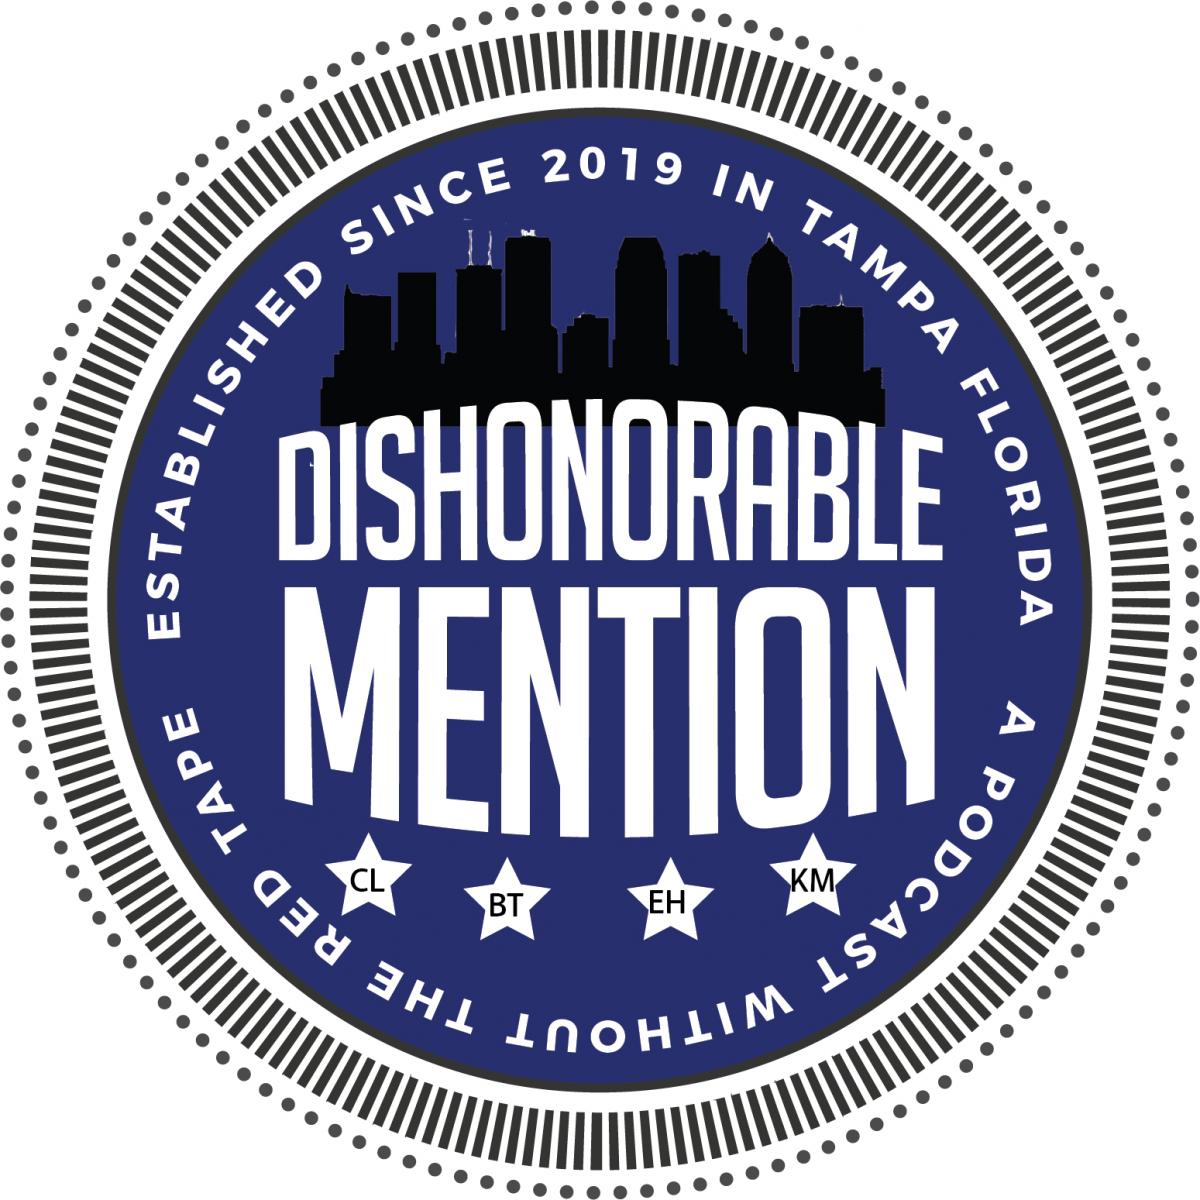 Dishonorable Mention Podcast Episode 38: War on I-4, Christmas Decorations, and the 2020 Presidential Race